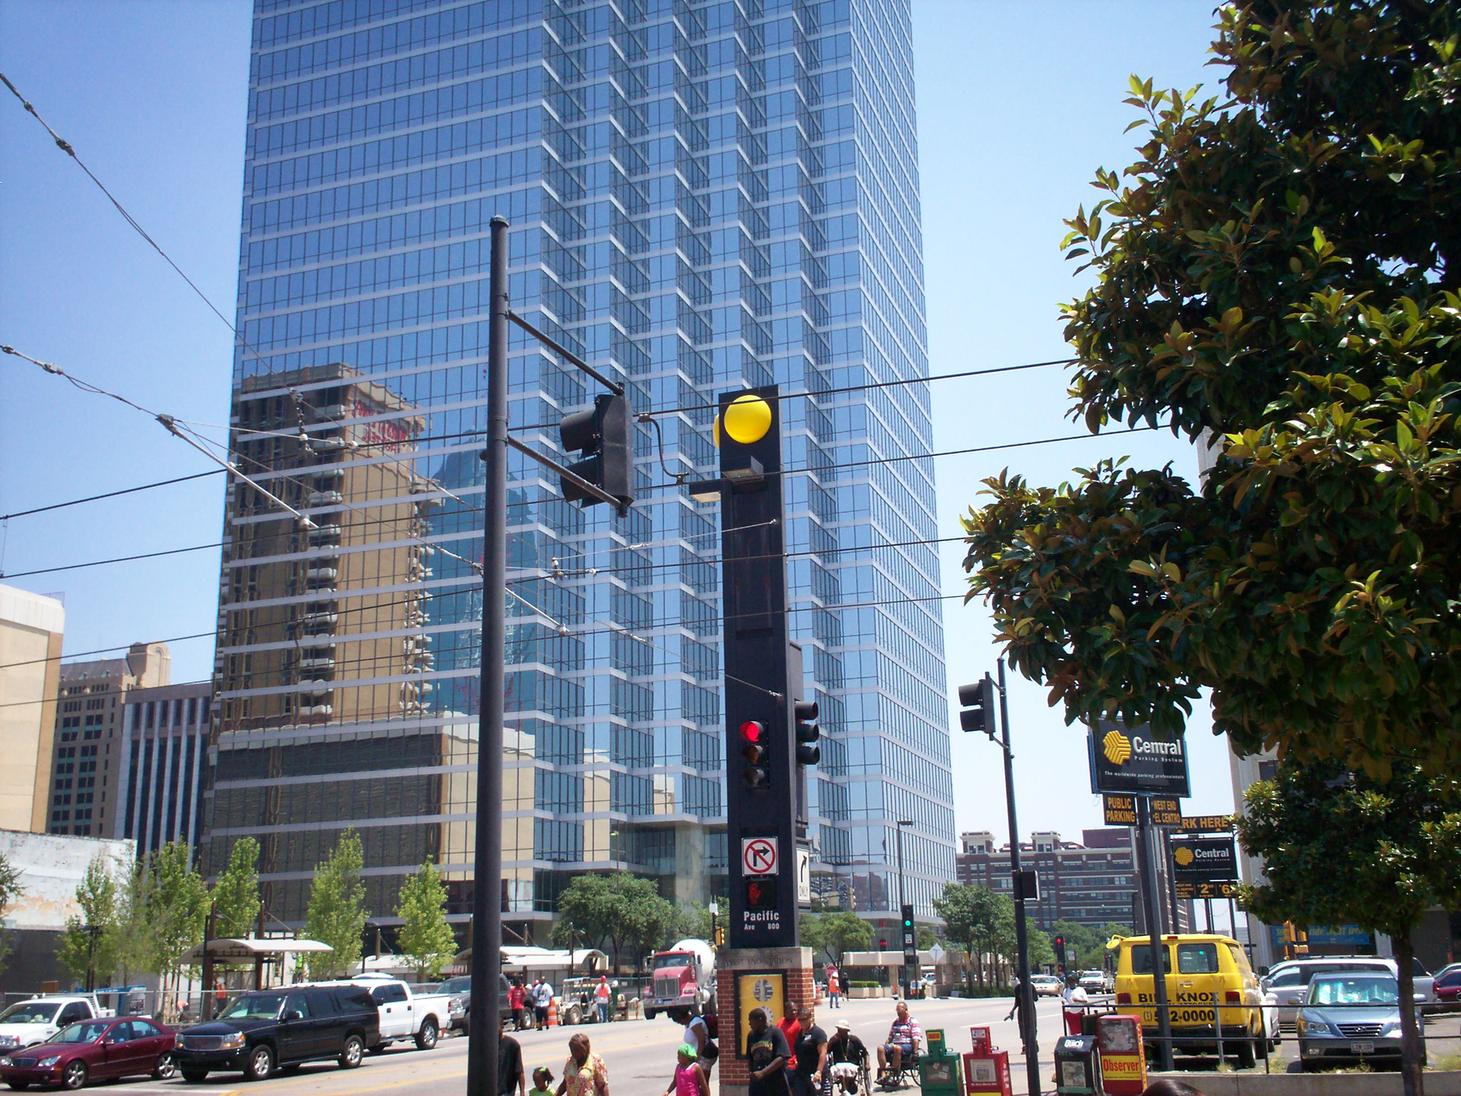 The base of tallest skyscraper in Dallas, and the 4th tallest in Texas.  Fountain Place is seen in the reflection.